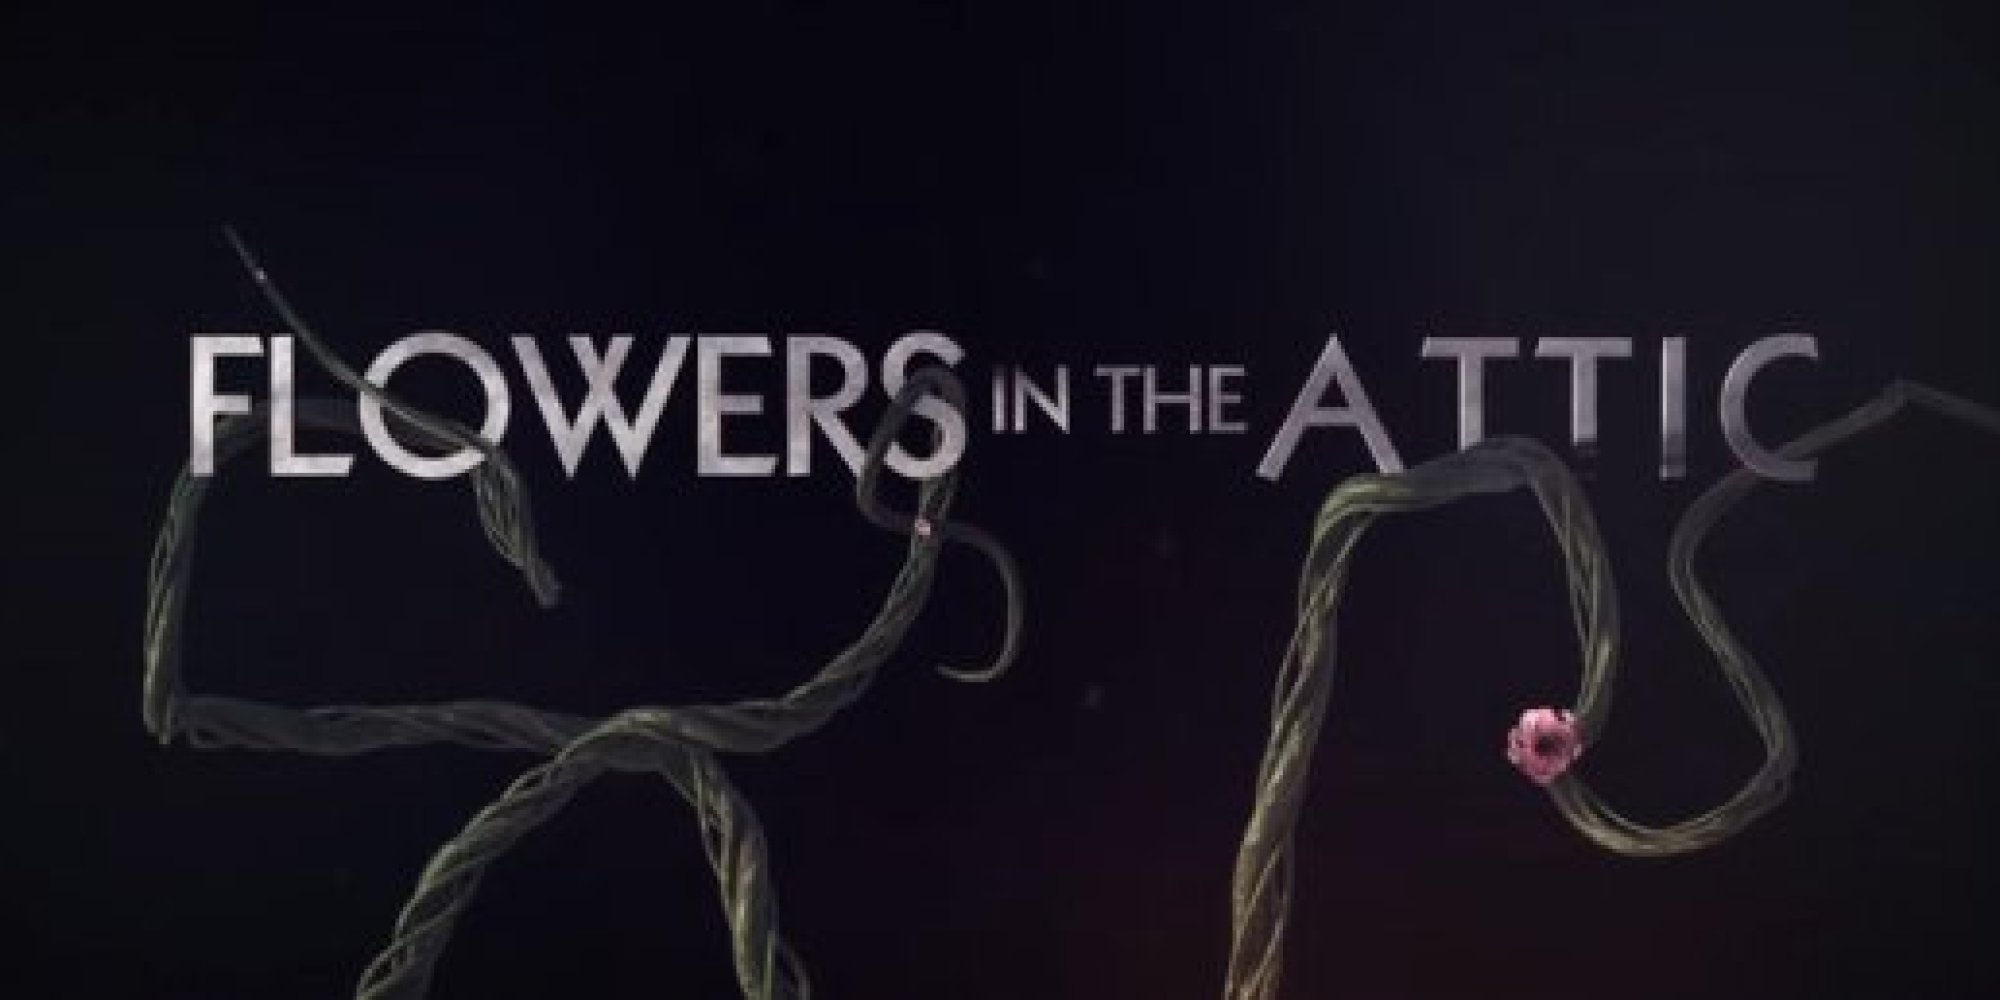 flowers in the attic writer